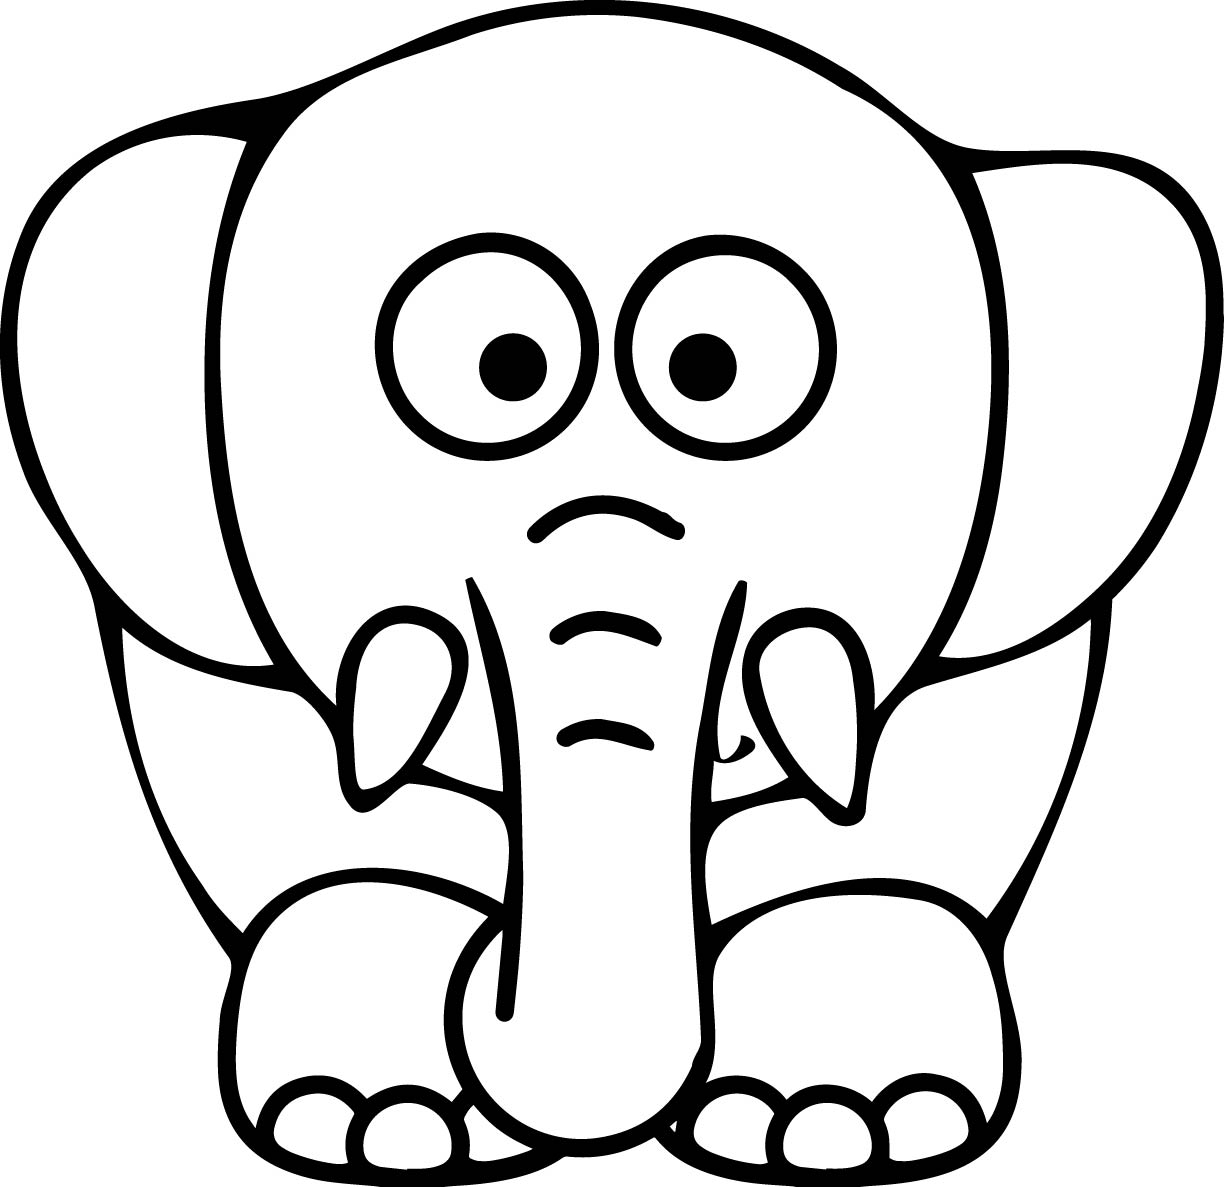 elephant coloring pages free printable elephant coloring pages for kids elephant coloring pages